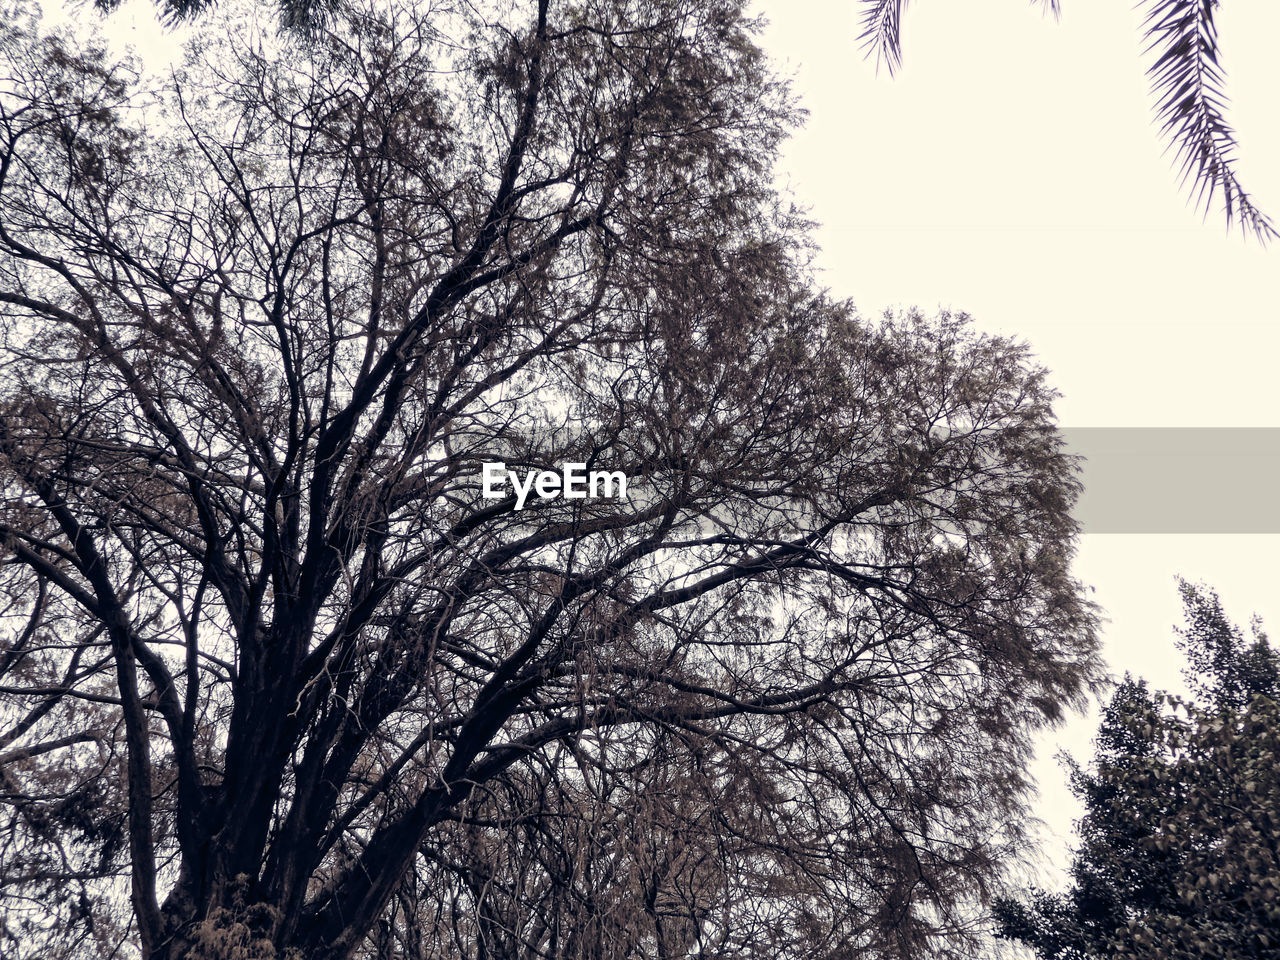 tree, low angle view, nature, branch, outdoors, clear sky, no people, bare tree, sky, tranquility, beauty in nature, day, growth